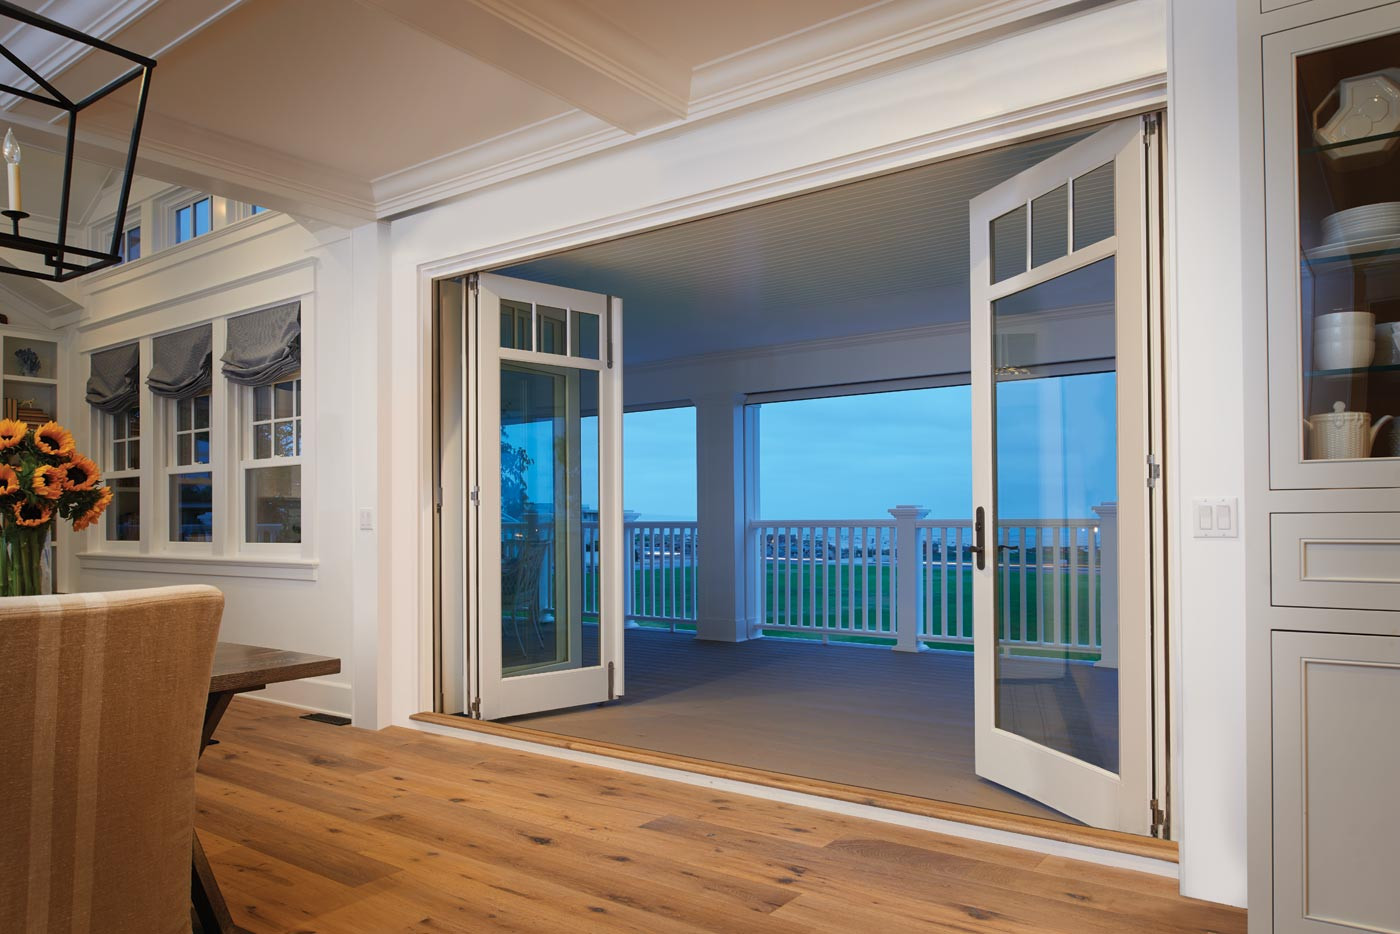 Best ideas about Folding Patio Doors . Save or Pin Folding Patio Glass Doors Now.